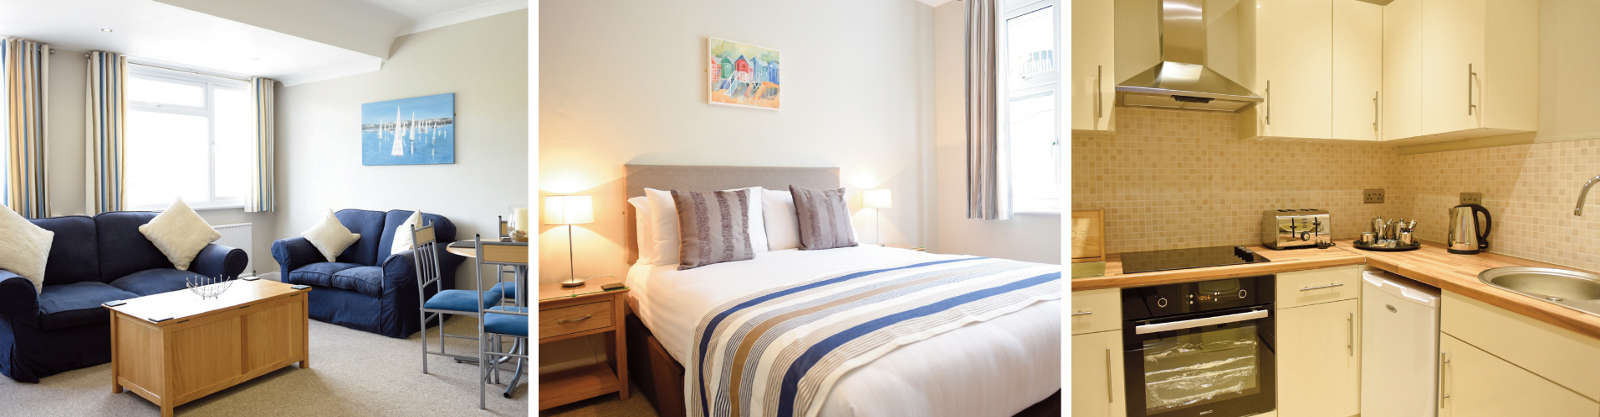 Hotels & Apartments Bournemouth